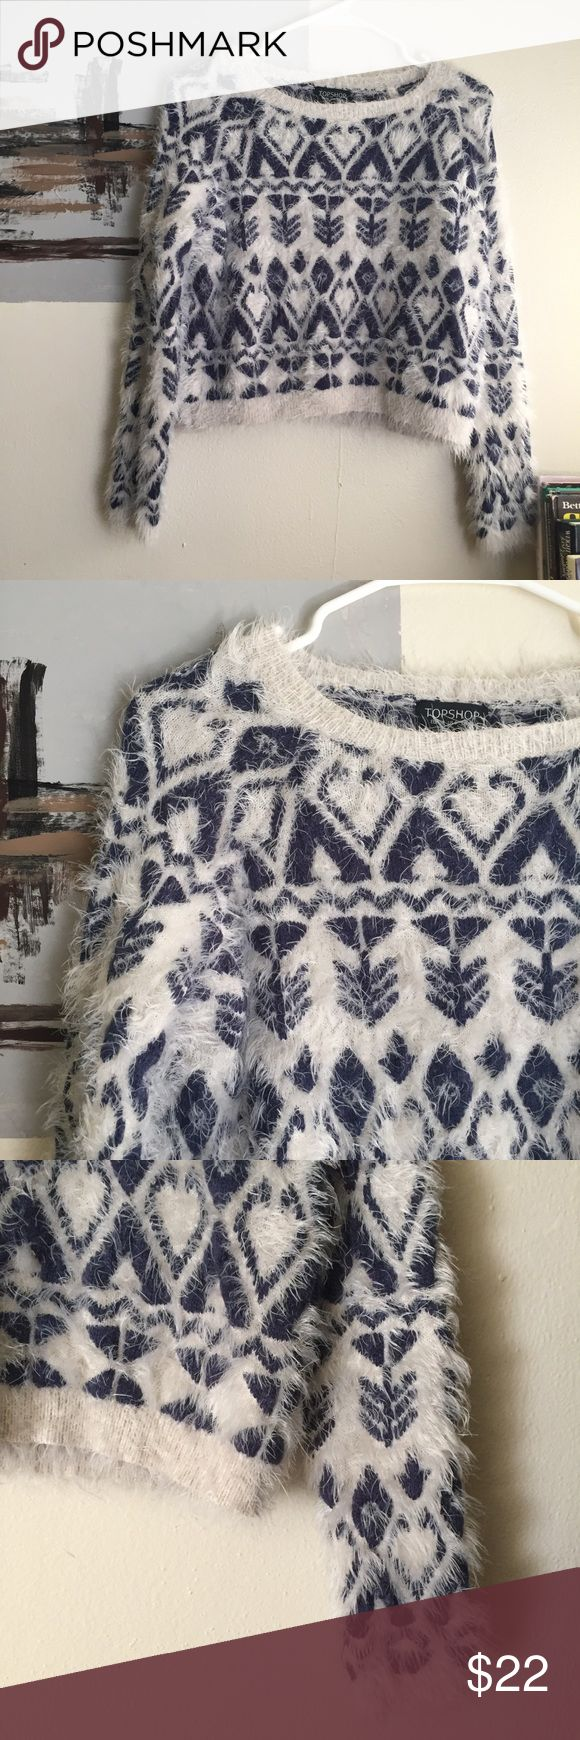 TOPSHOP Fluffy lovely print blue & cream crop top It's NWOT. No imperfections at all. Just didn't fit me. Ask if have any questions. Topshop Tops Crop Tops